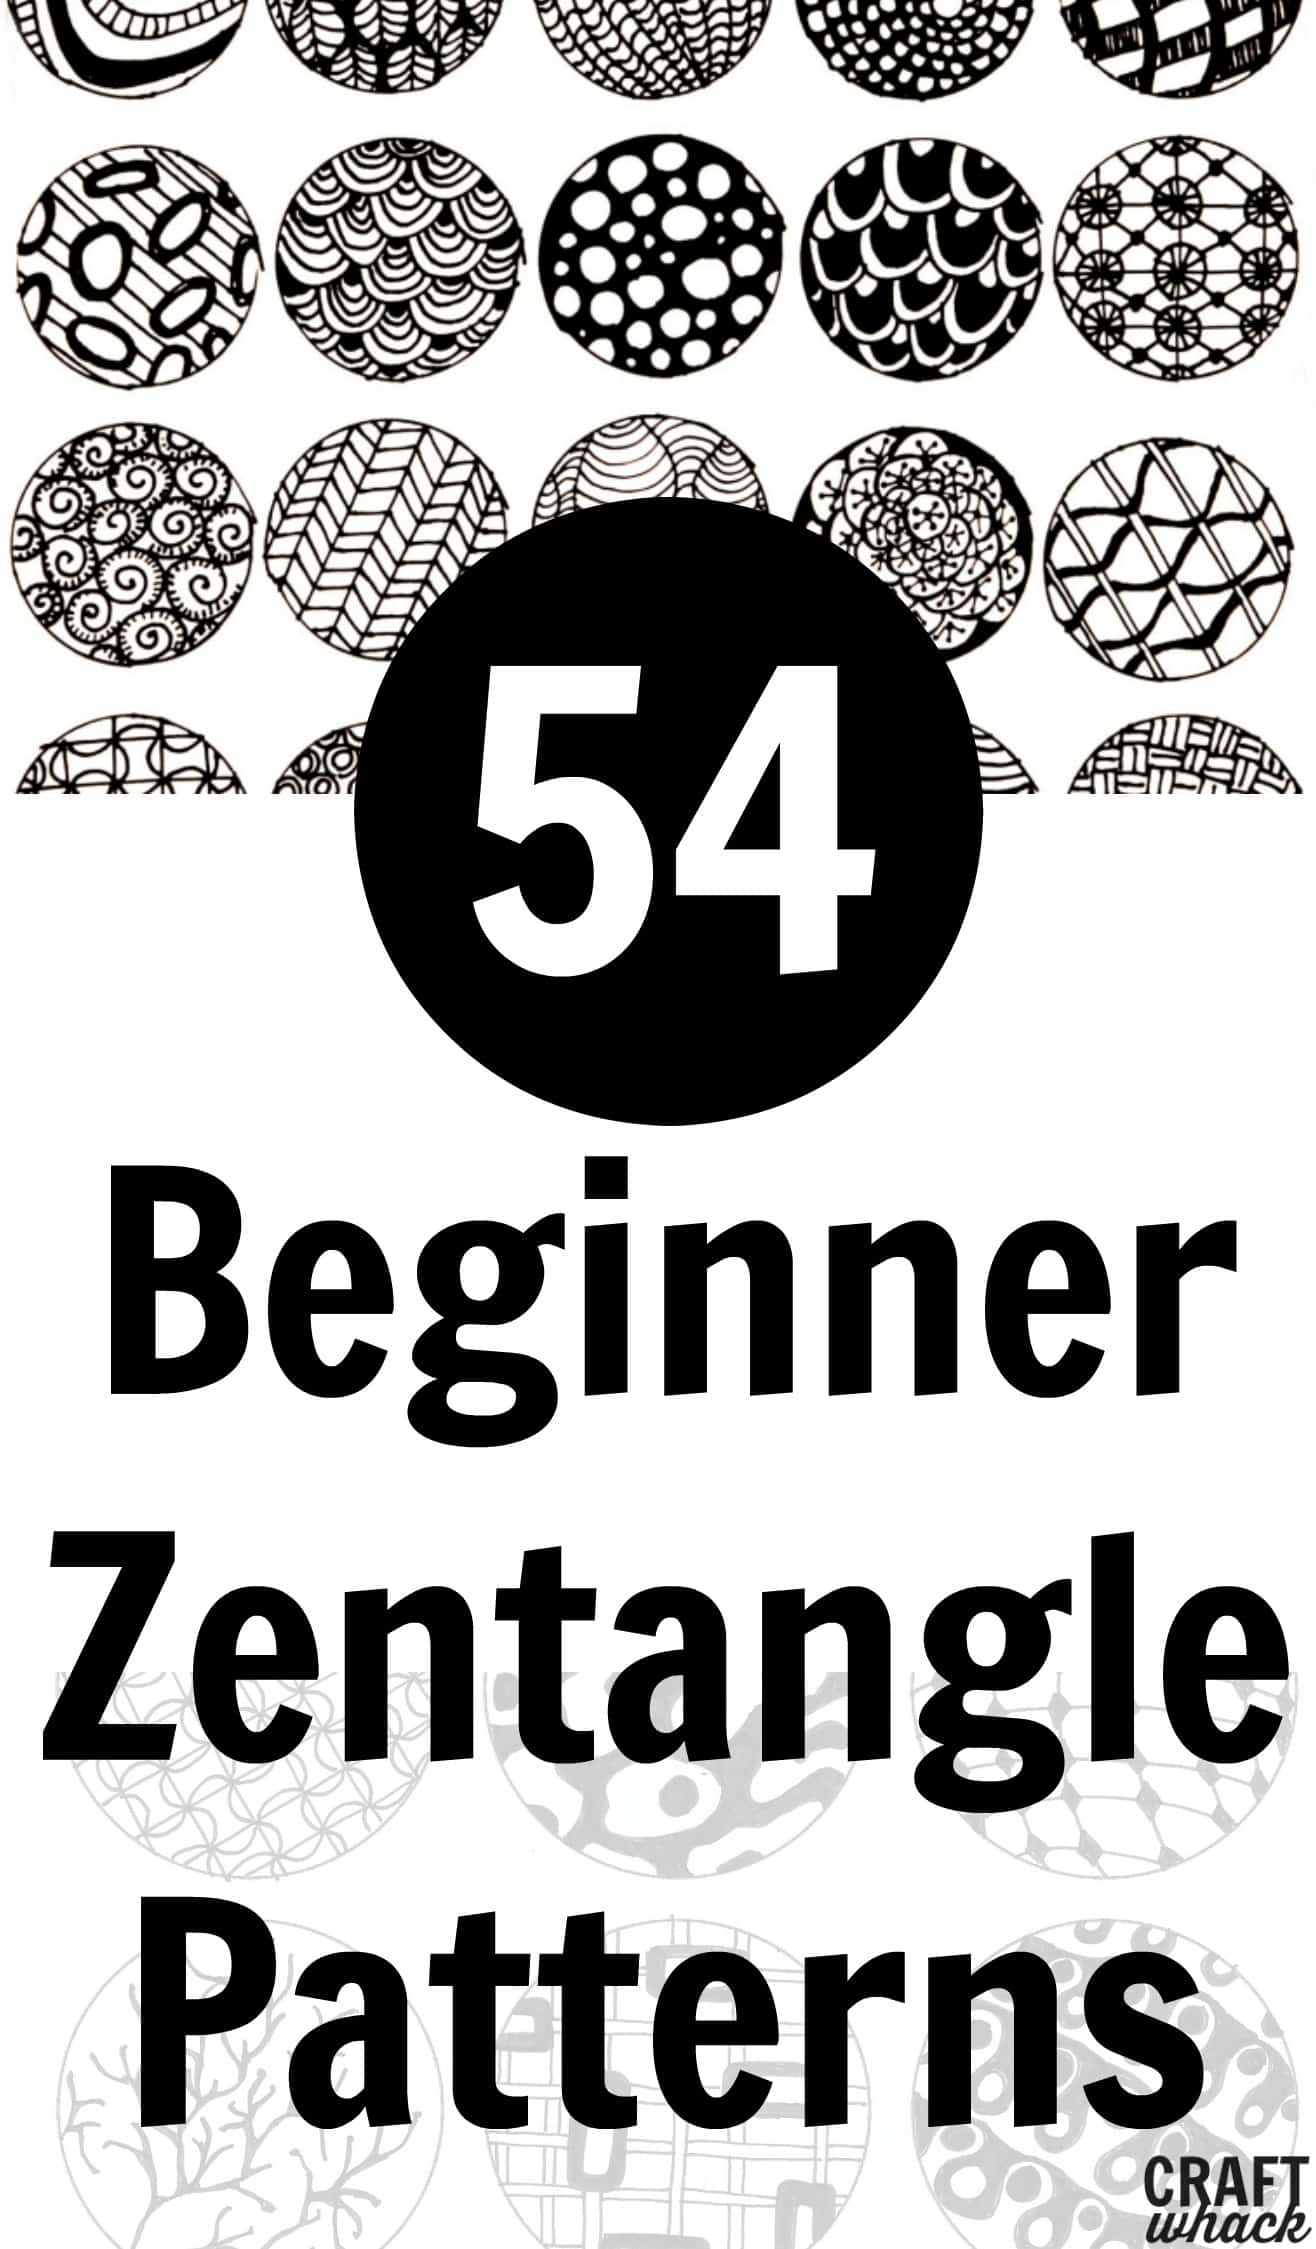 zenangle patterns easy